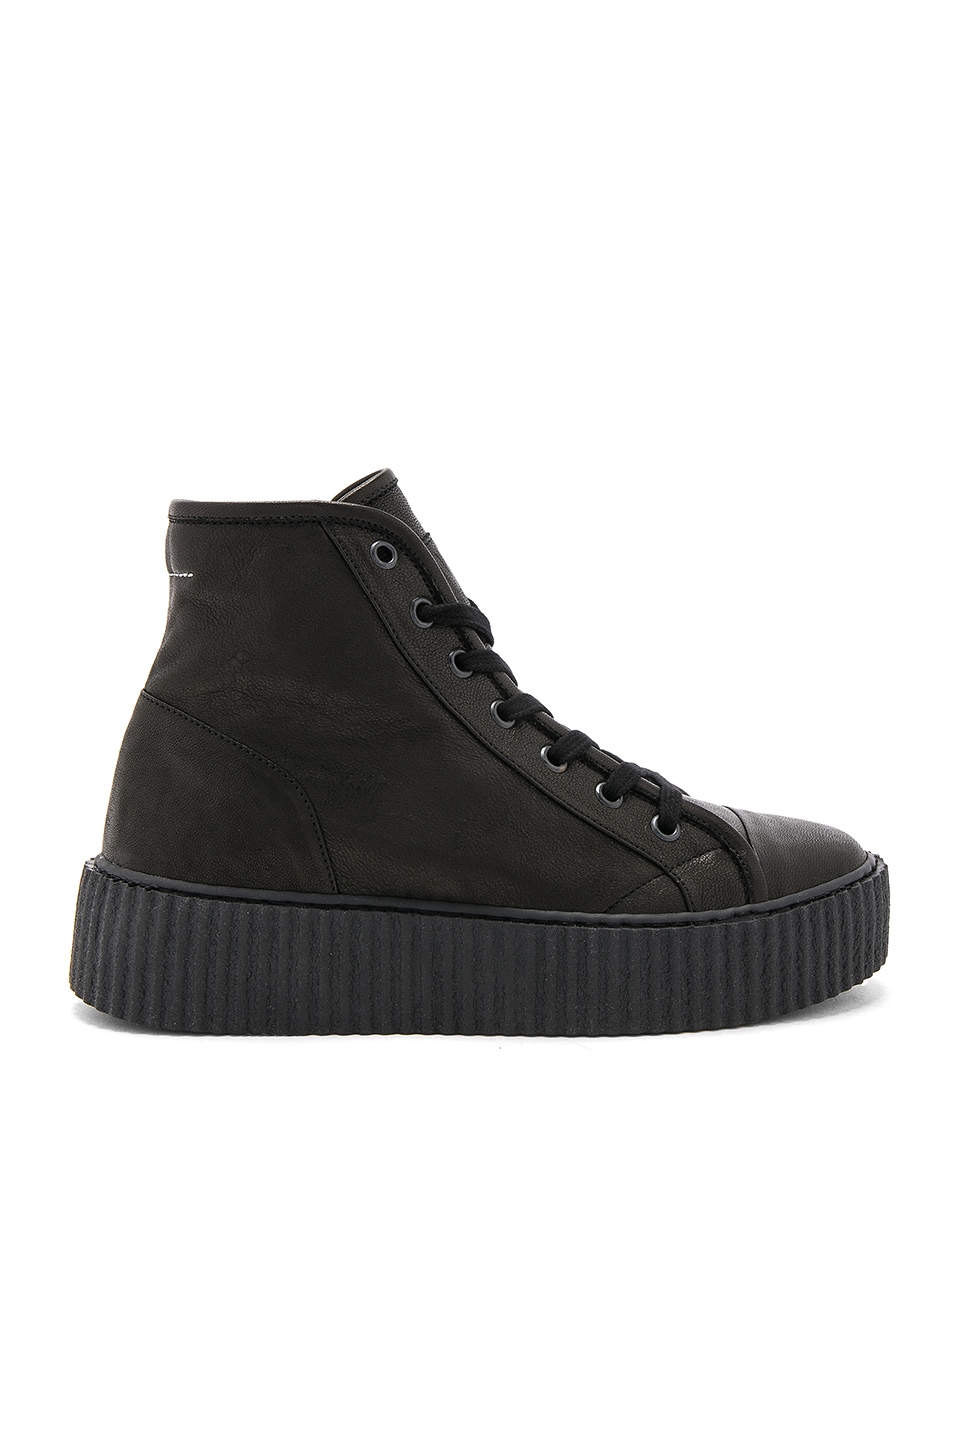 High Top Sneakers by Mm6 Maison Margiela